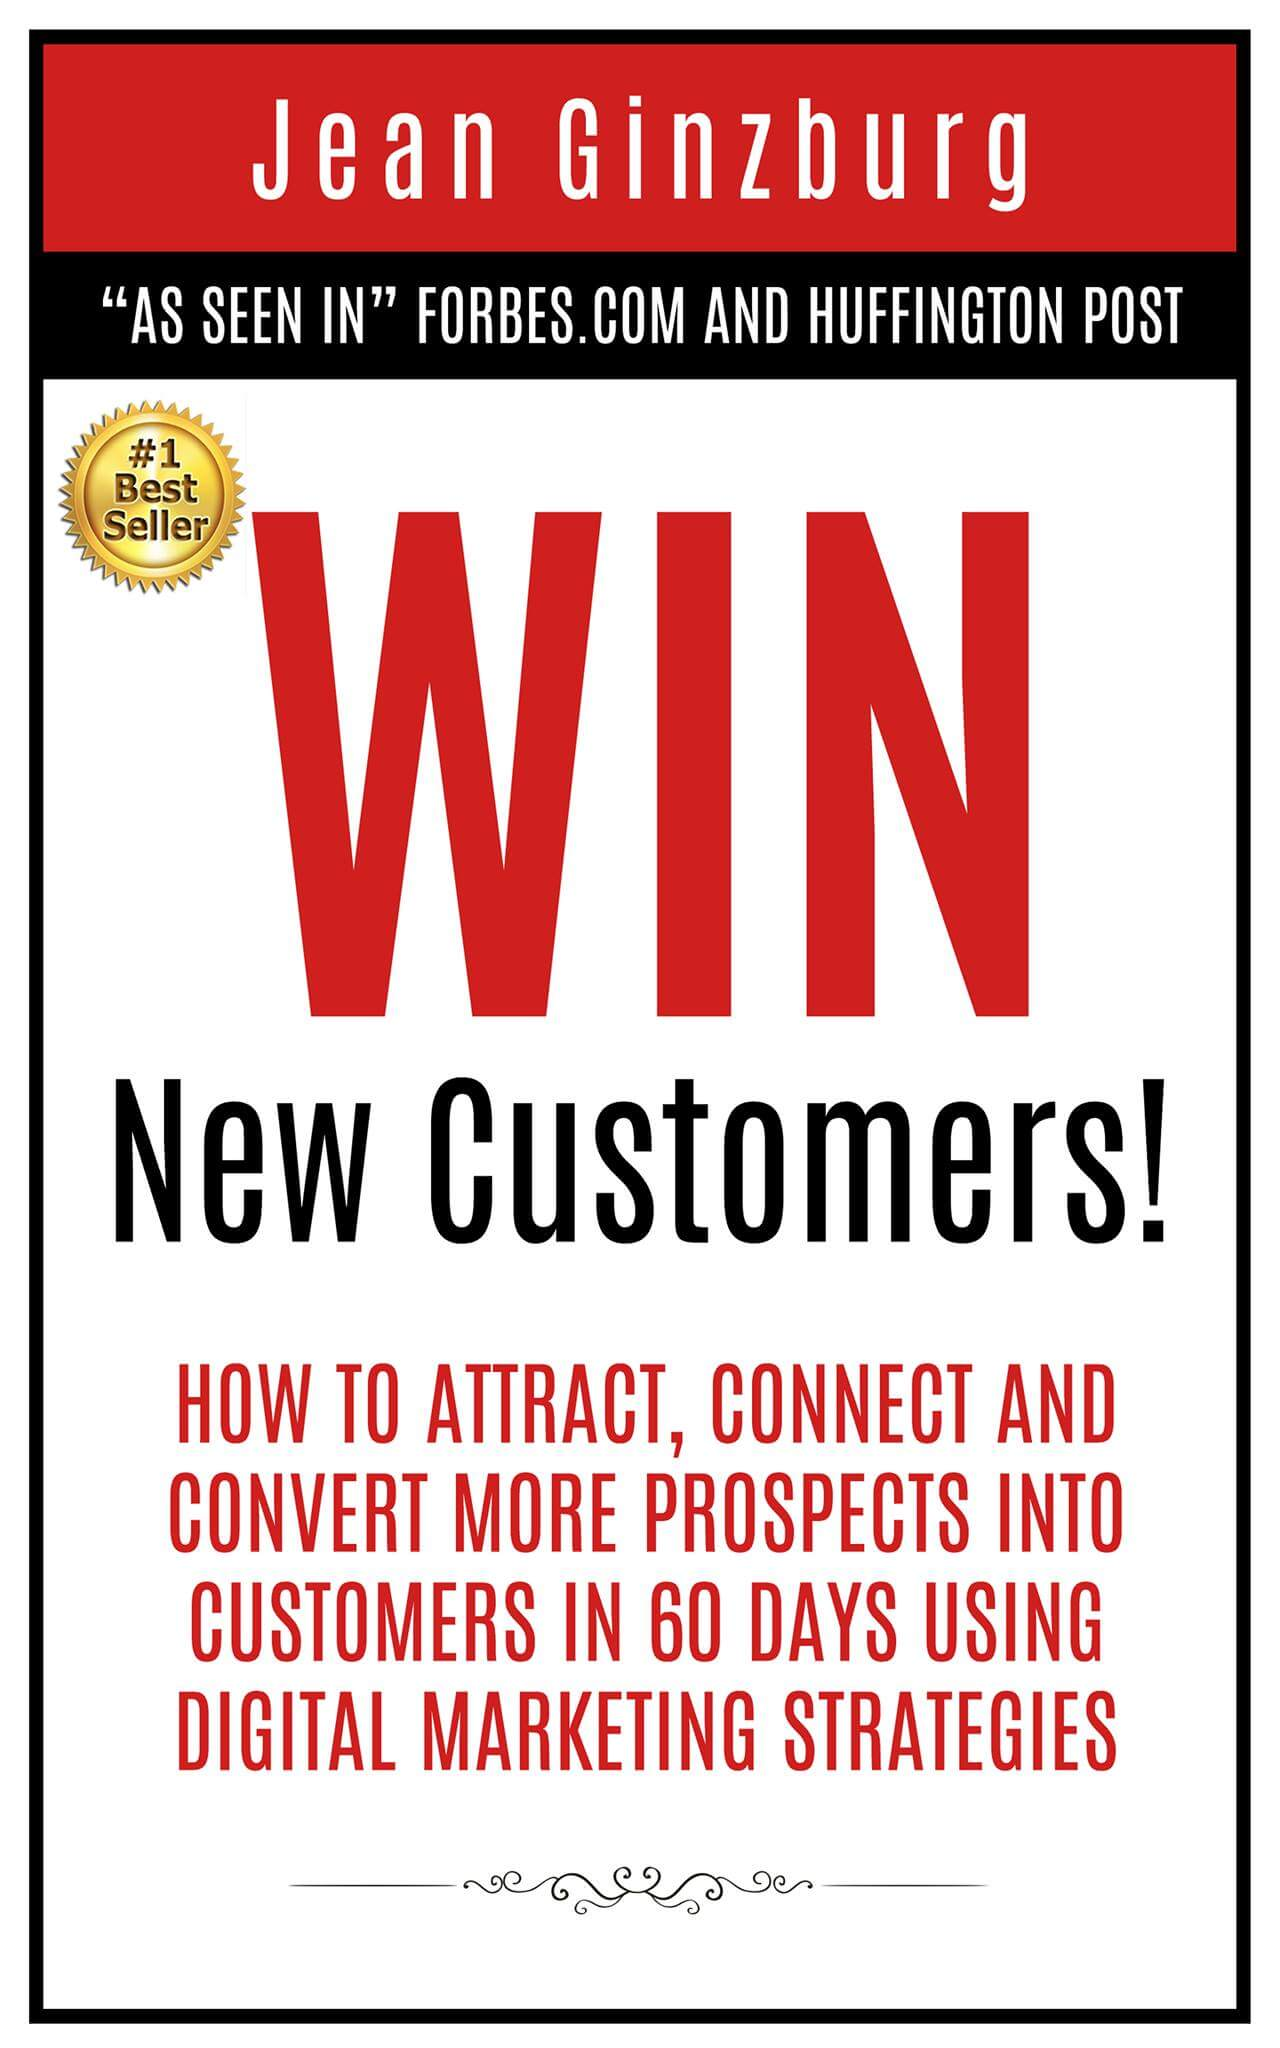 Win-New-Customers-How-to-Attract-Connect-and-Convert-More-Prospects-into-Customers-in-60-Days-Using-Digital-Marketing